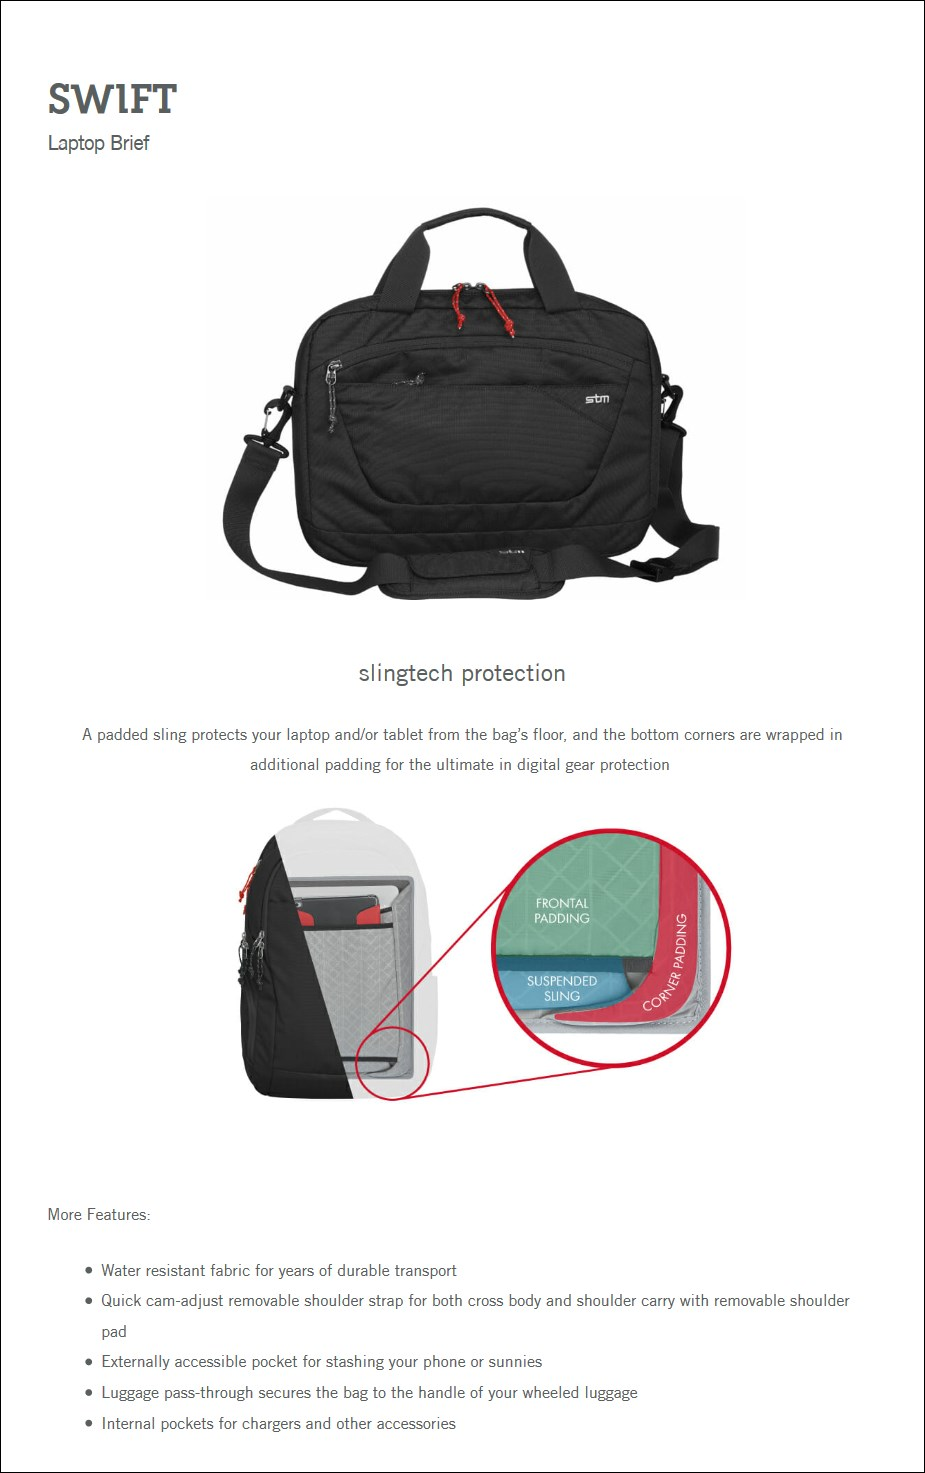 stm_swift_laptop_brief_bag_for_15_to_16_notebooks_ac31223_3.jpg